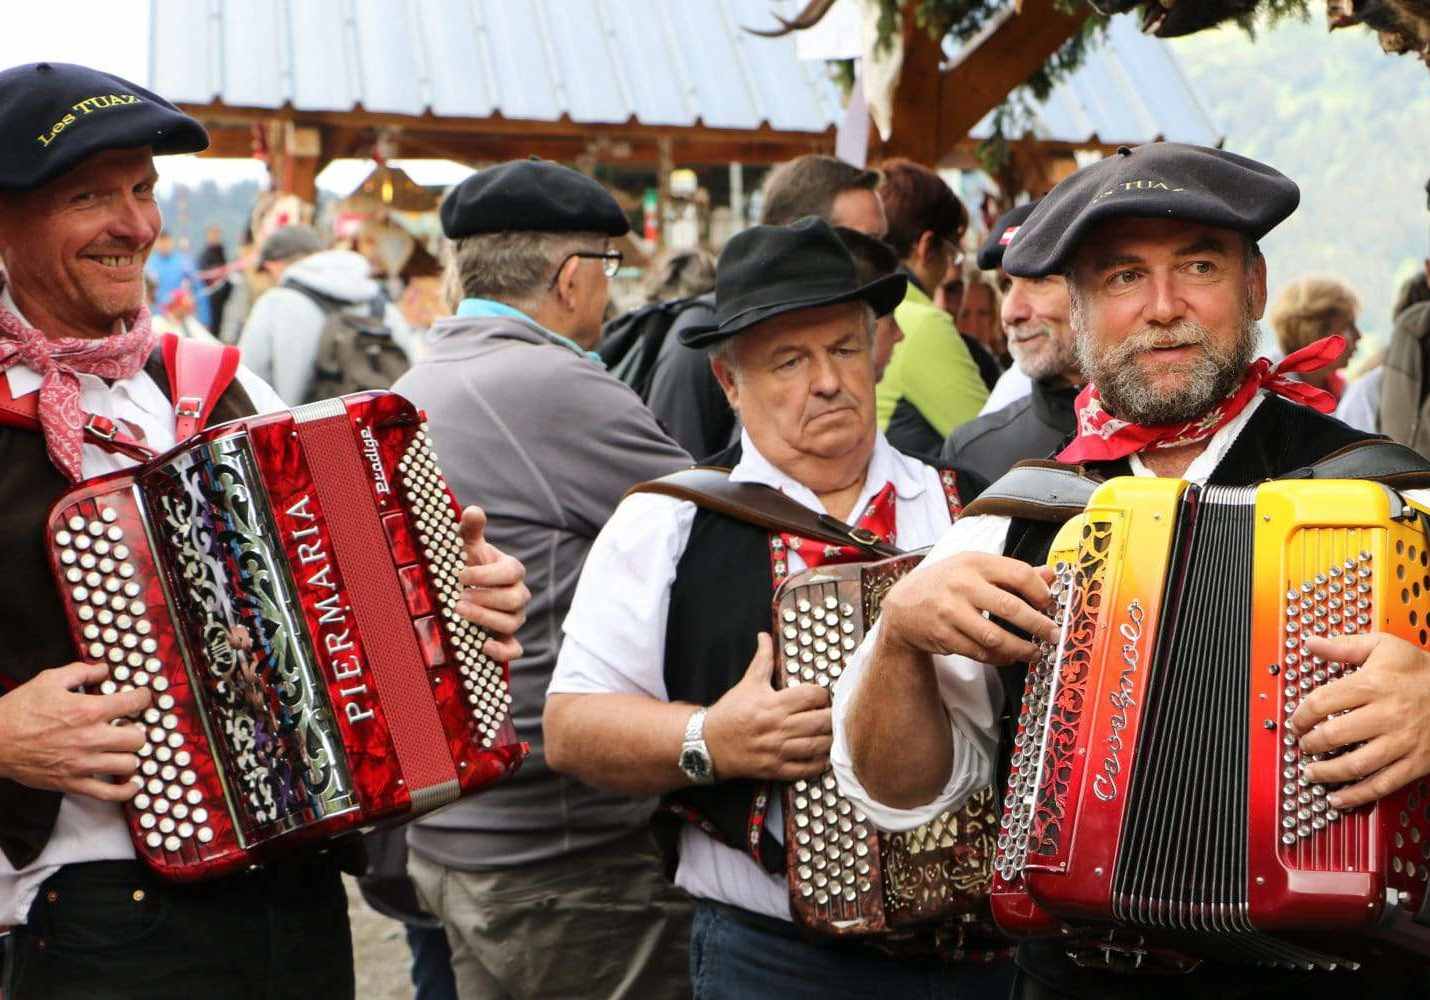 Accordion players in France at Belle Dimanche